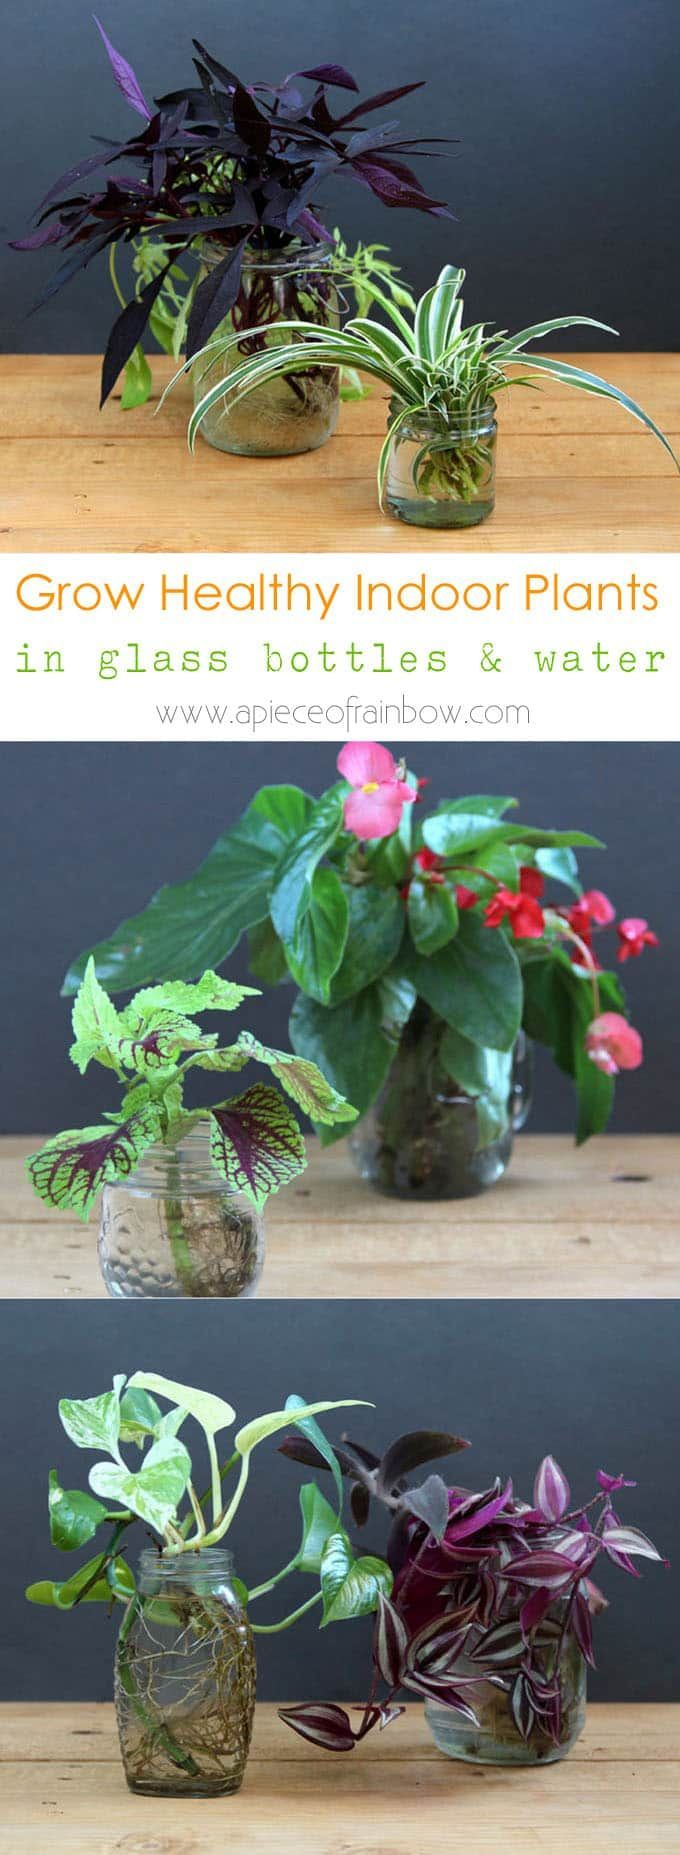 grow-indoor-plants-in-glass-bottles-apieceofrainbow (3) - begonia, spider plant, wandering jew, pothos, sweet potato vine, coleus